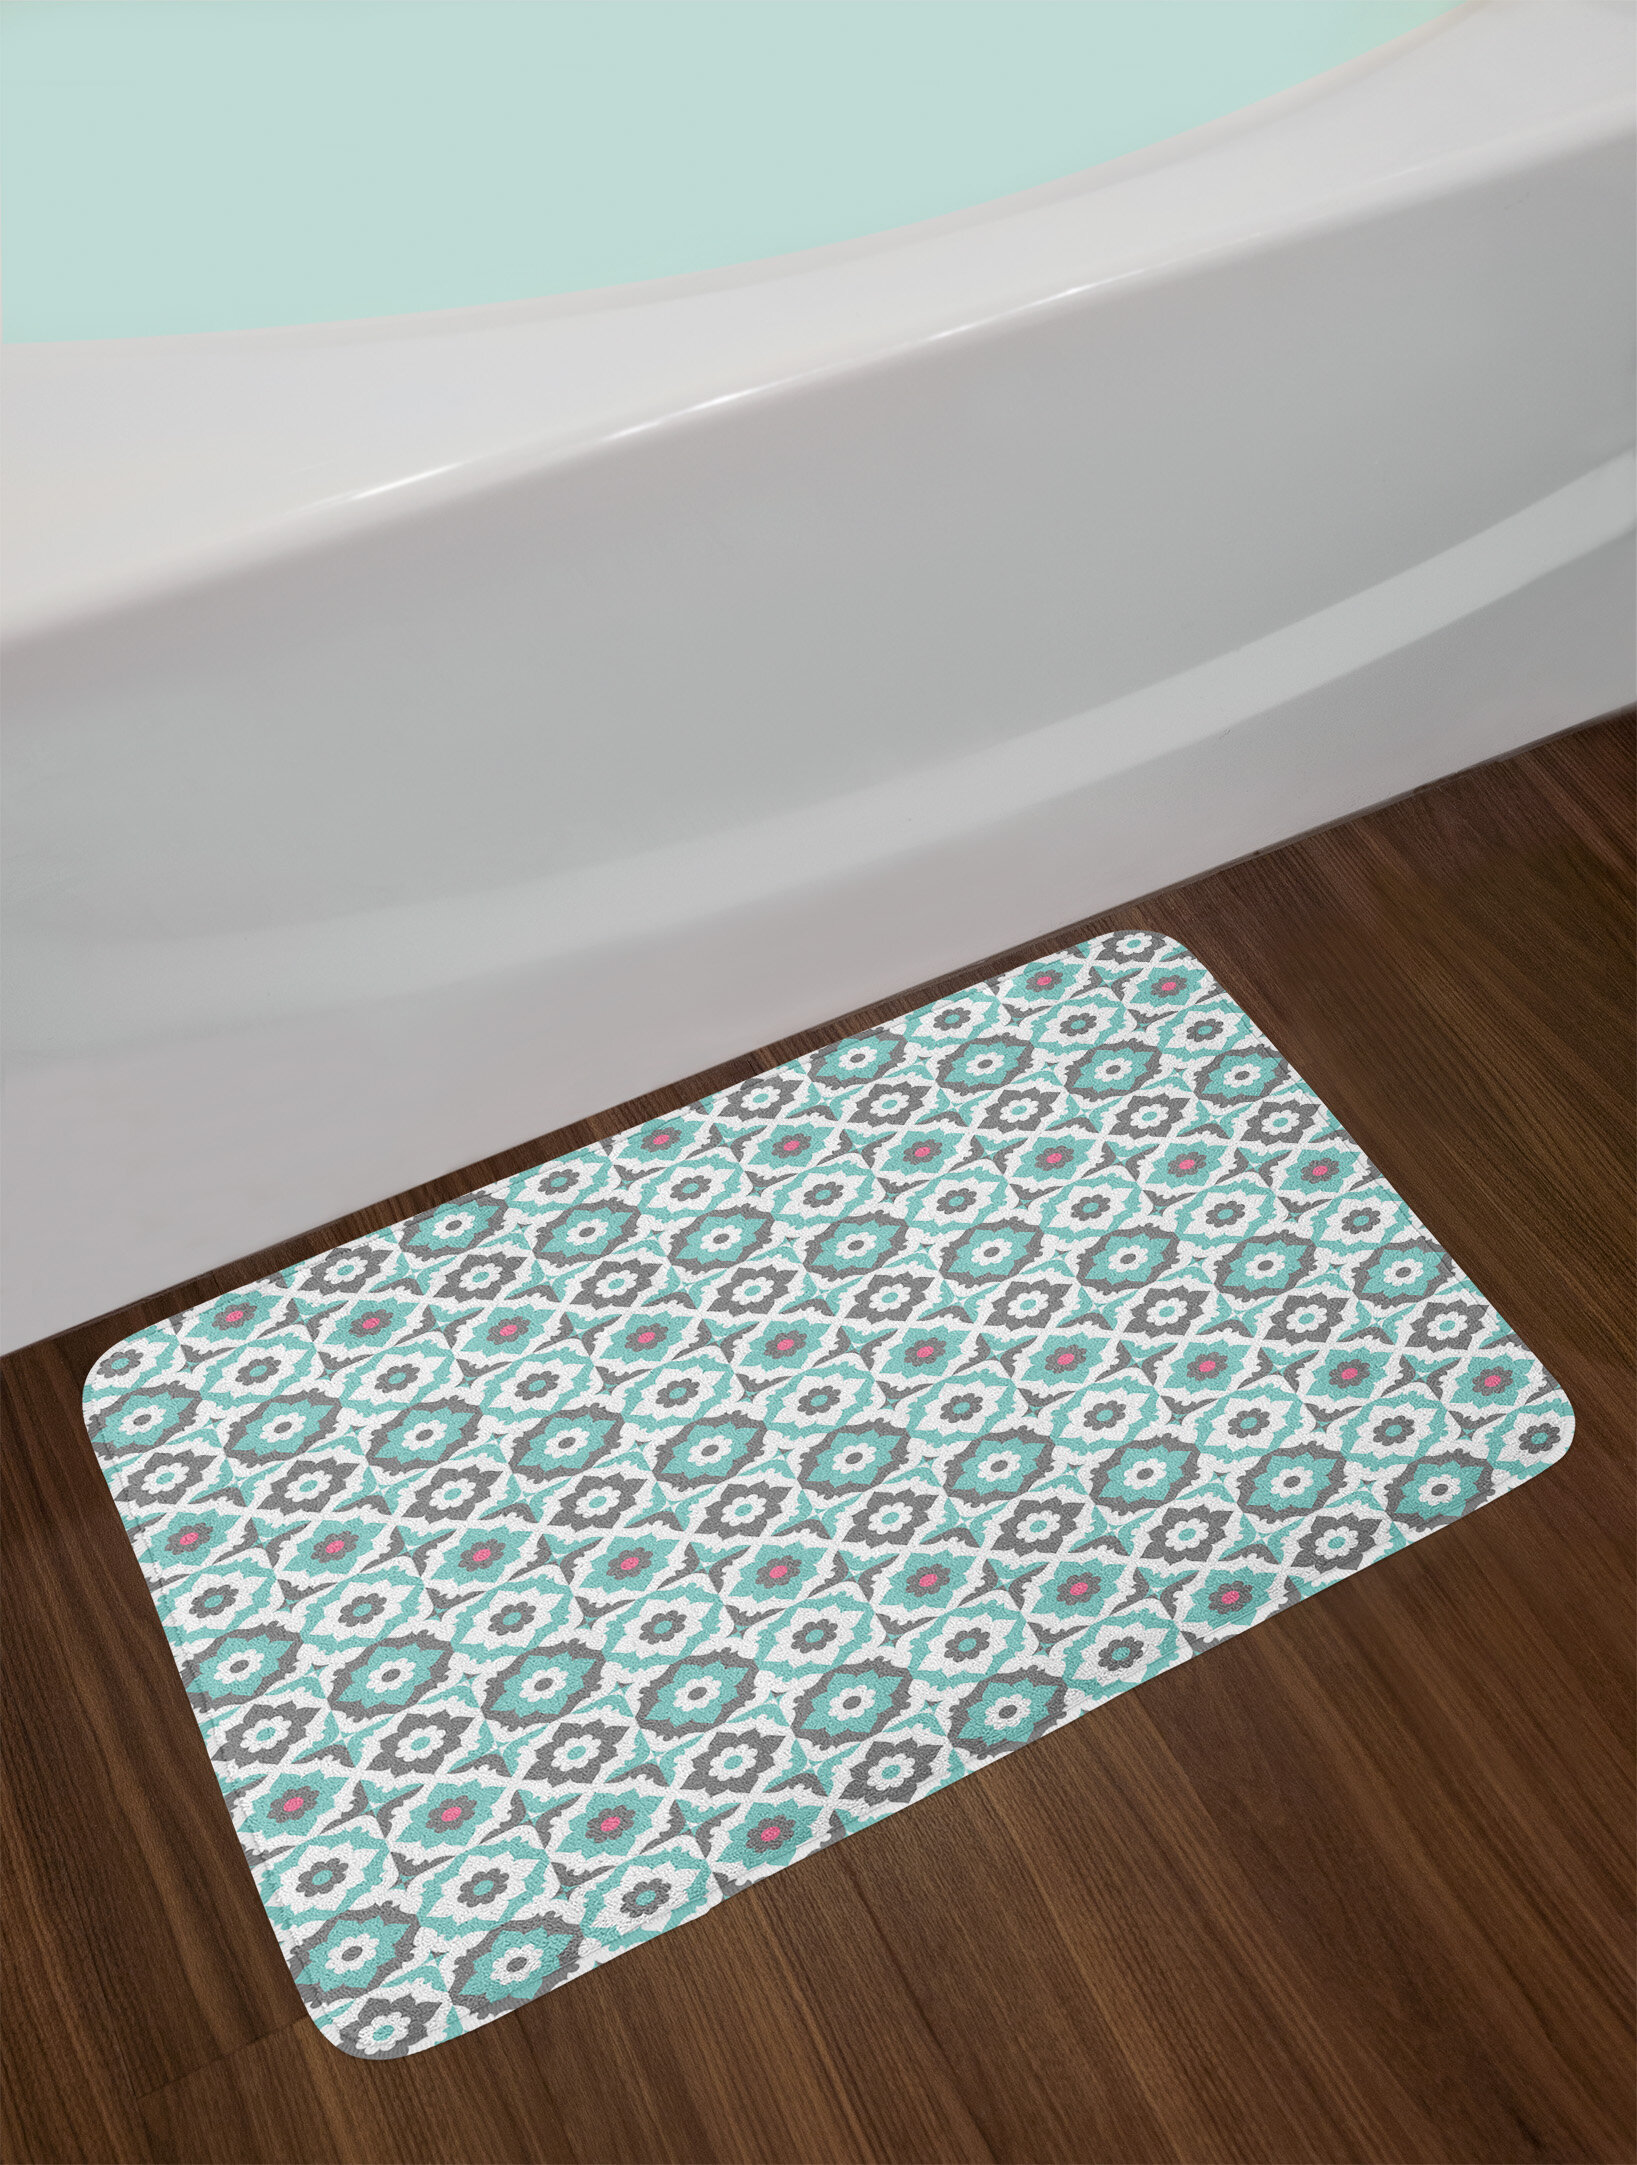 Ambesonne Quatrefoil Bath Mat By Old Fashioned Style Mosaic With Simple Pastel Daisies Spanish Flowers Plush Bathroom Decor Non Slip